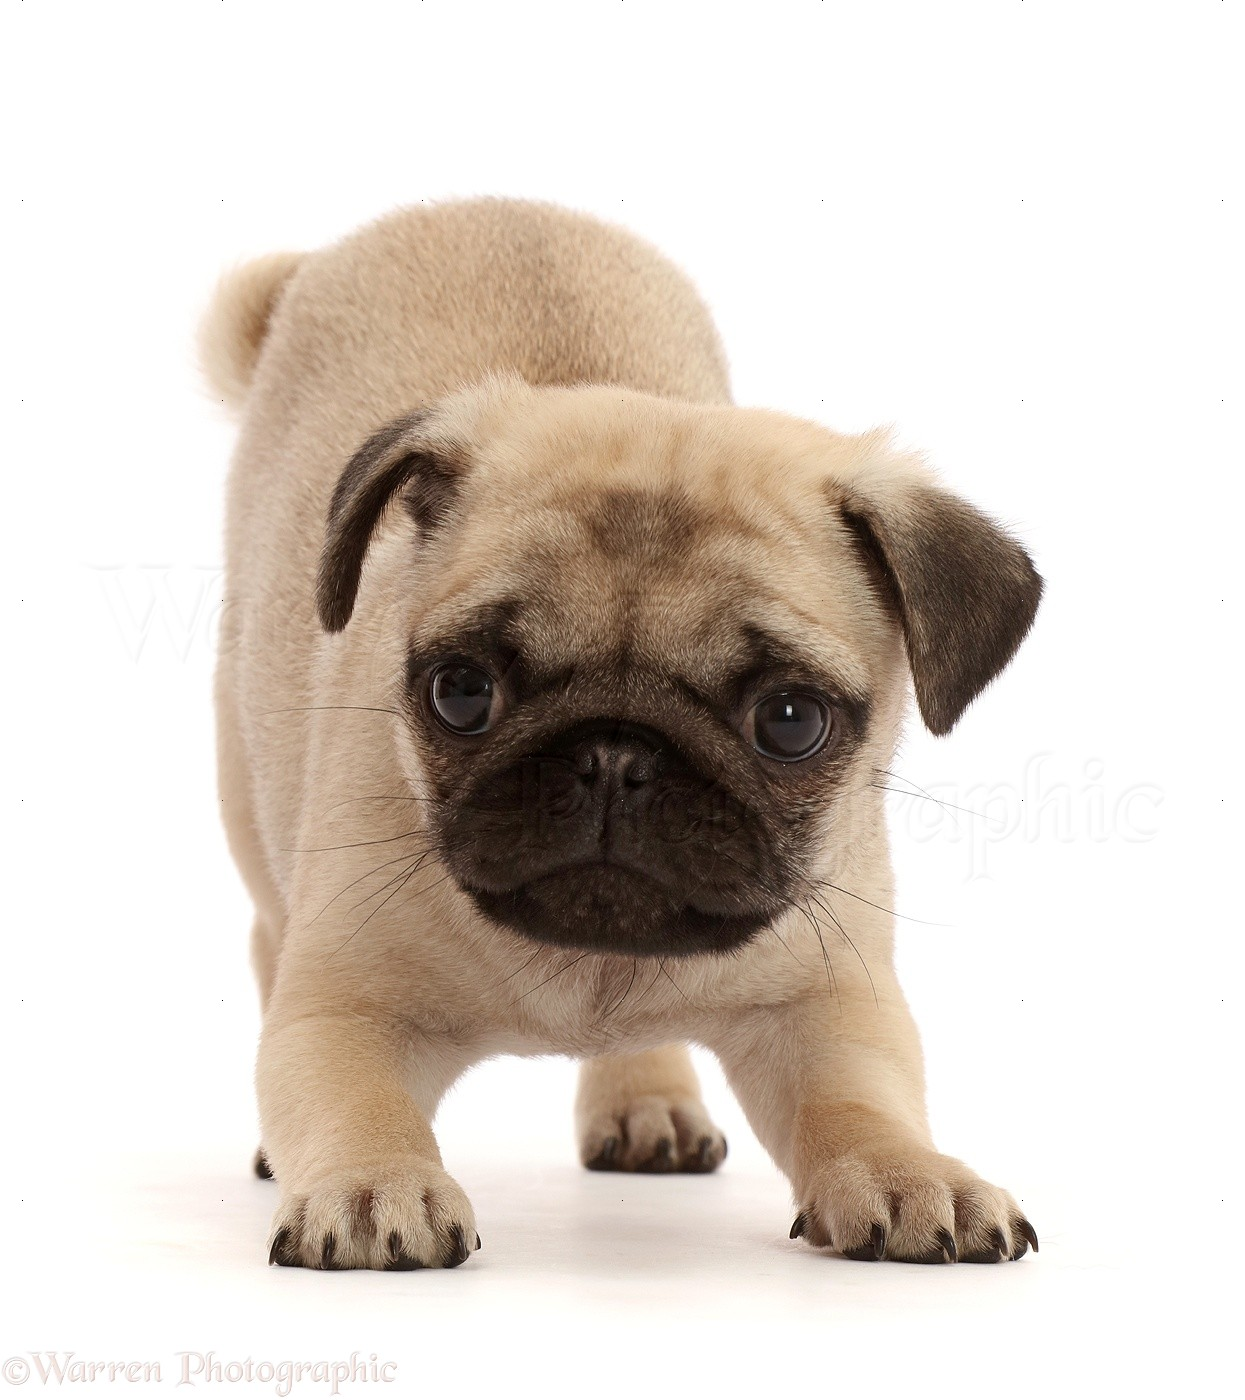 Dog Playful Fawn Pug Puppy 8 Weeks Old Photo Wp48345